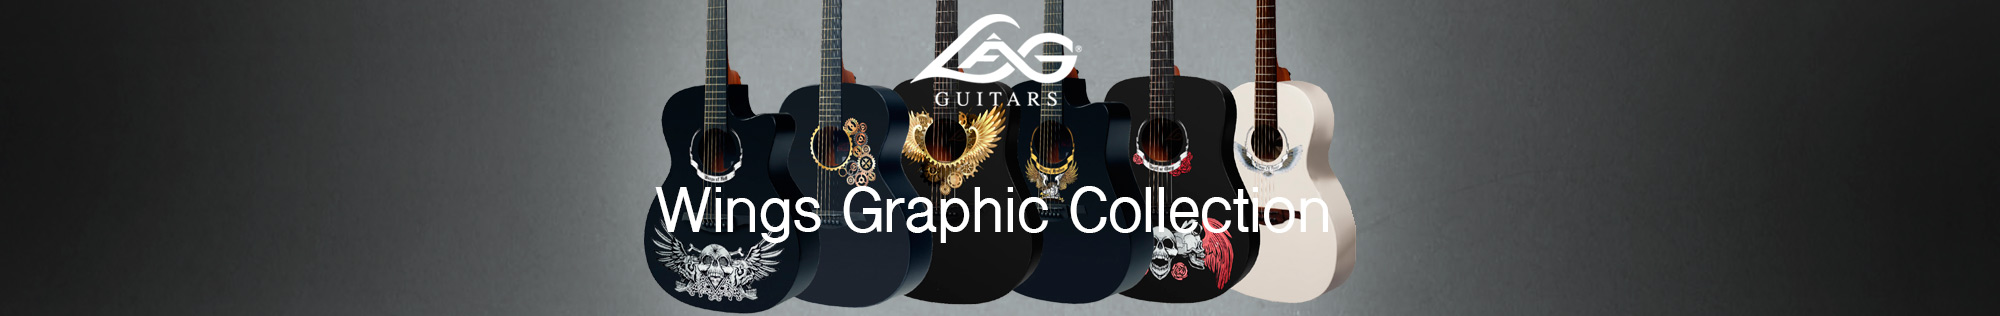 Lag Wings Graphic Collection